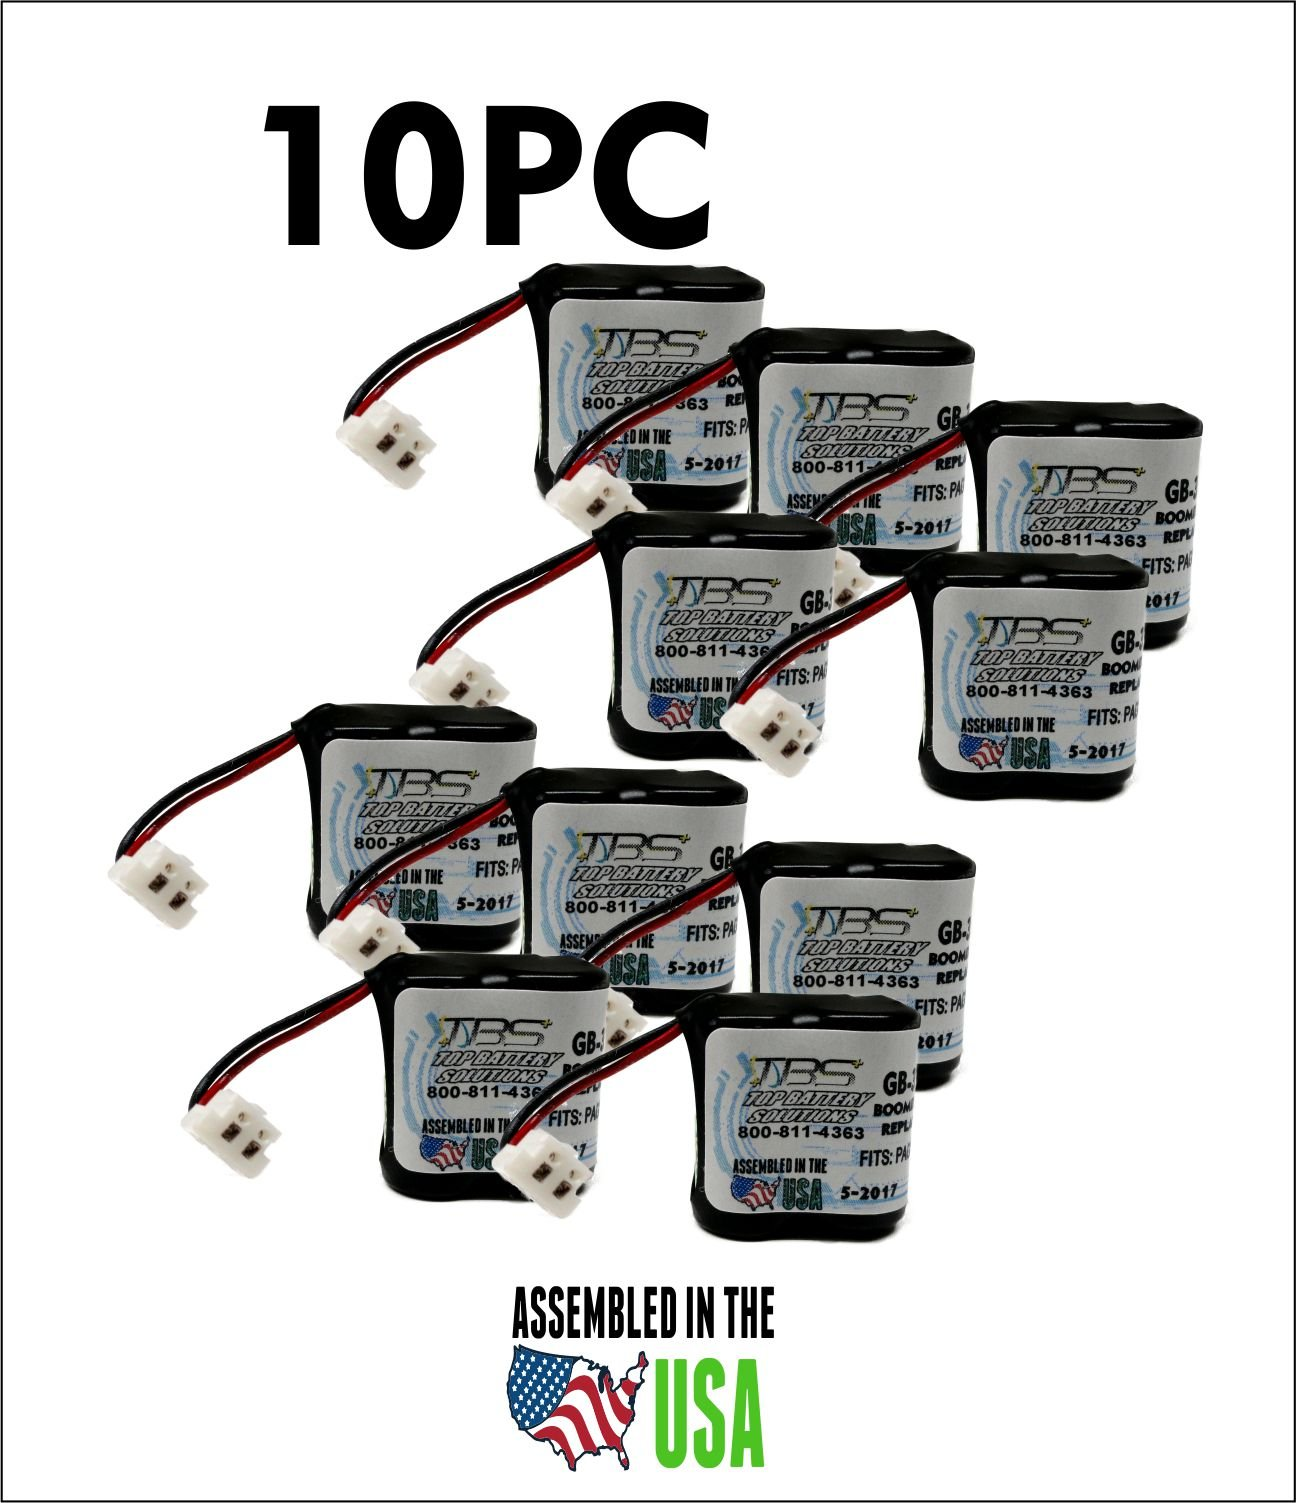 10PC GP35AAAH2BMX,GP-35AAAH2BMX,PAG003 Pager Battery, 2.4V, 400mAh, NiMH, PGB-35AAAH2BMX by TOP BATTERY SOLUTIONS